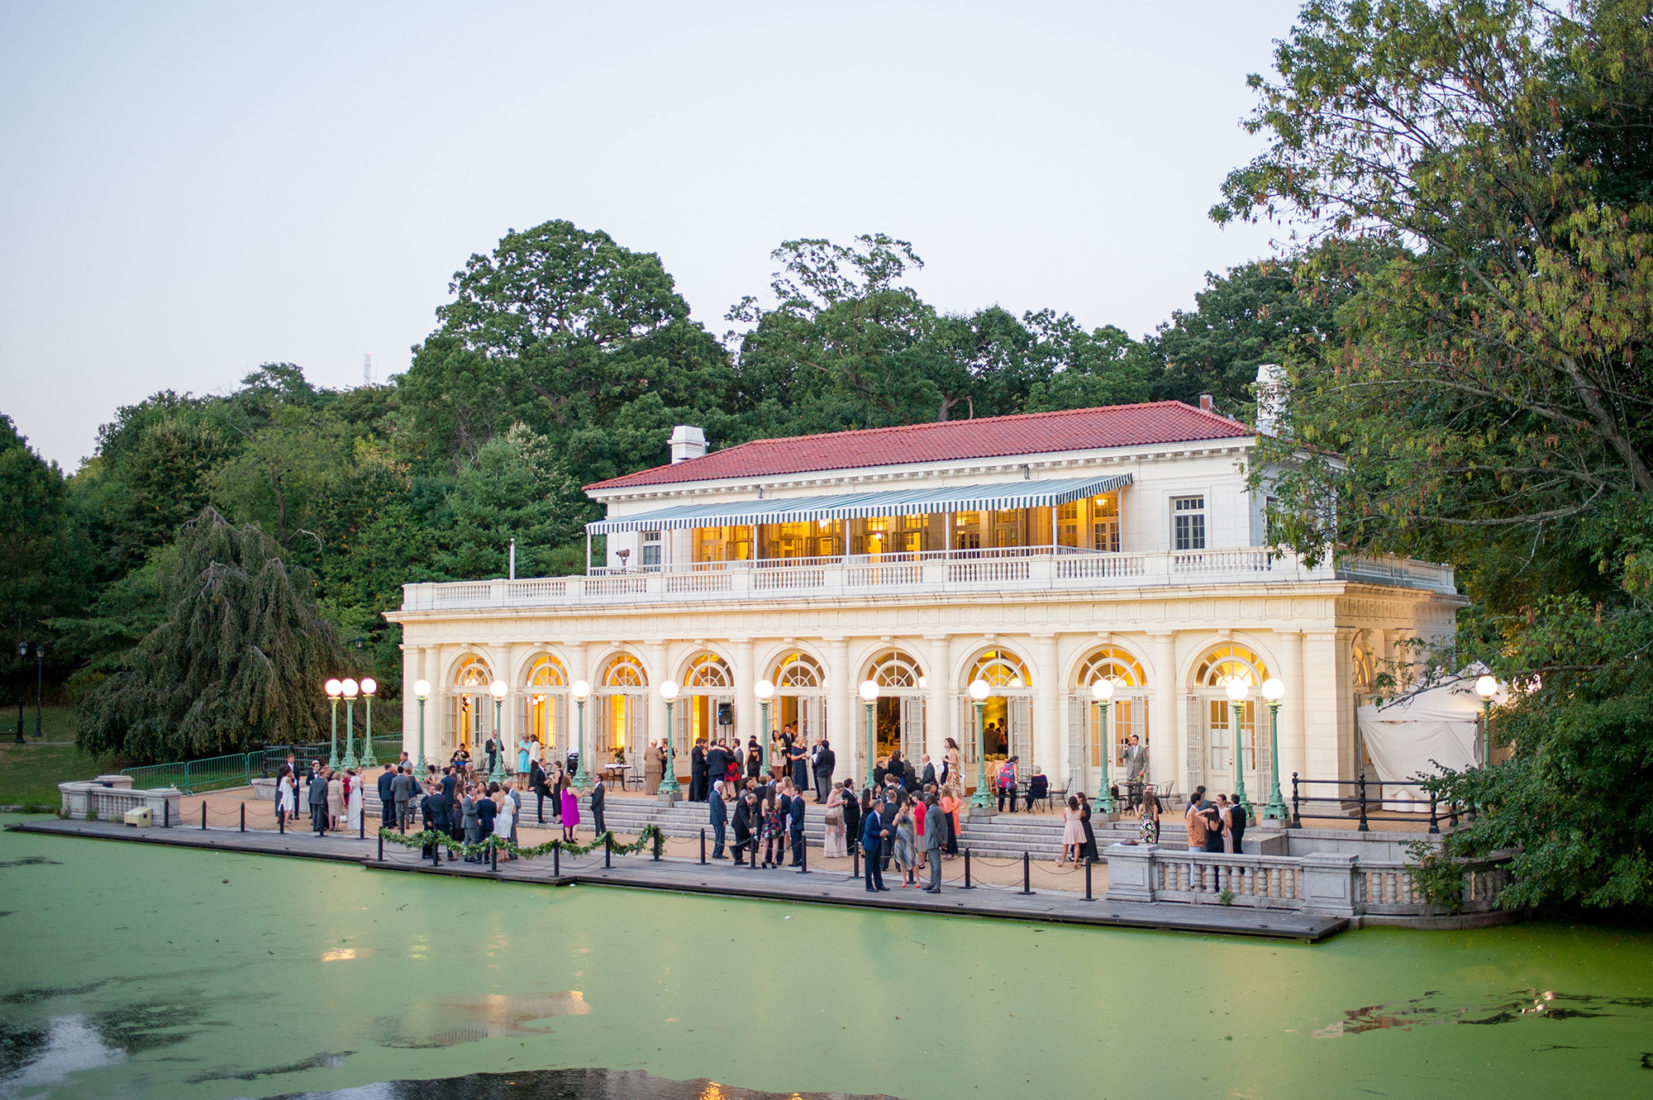 Picture of a luxury wedding at Prospect Park Boathouse lake front venue in Brooklyn. This iconic NYC wedding location is the perfect option to impress guests with its beauty and proximity to Manhattan. Images by Mikkel Paige Photography.